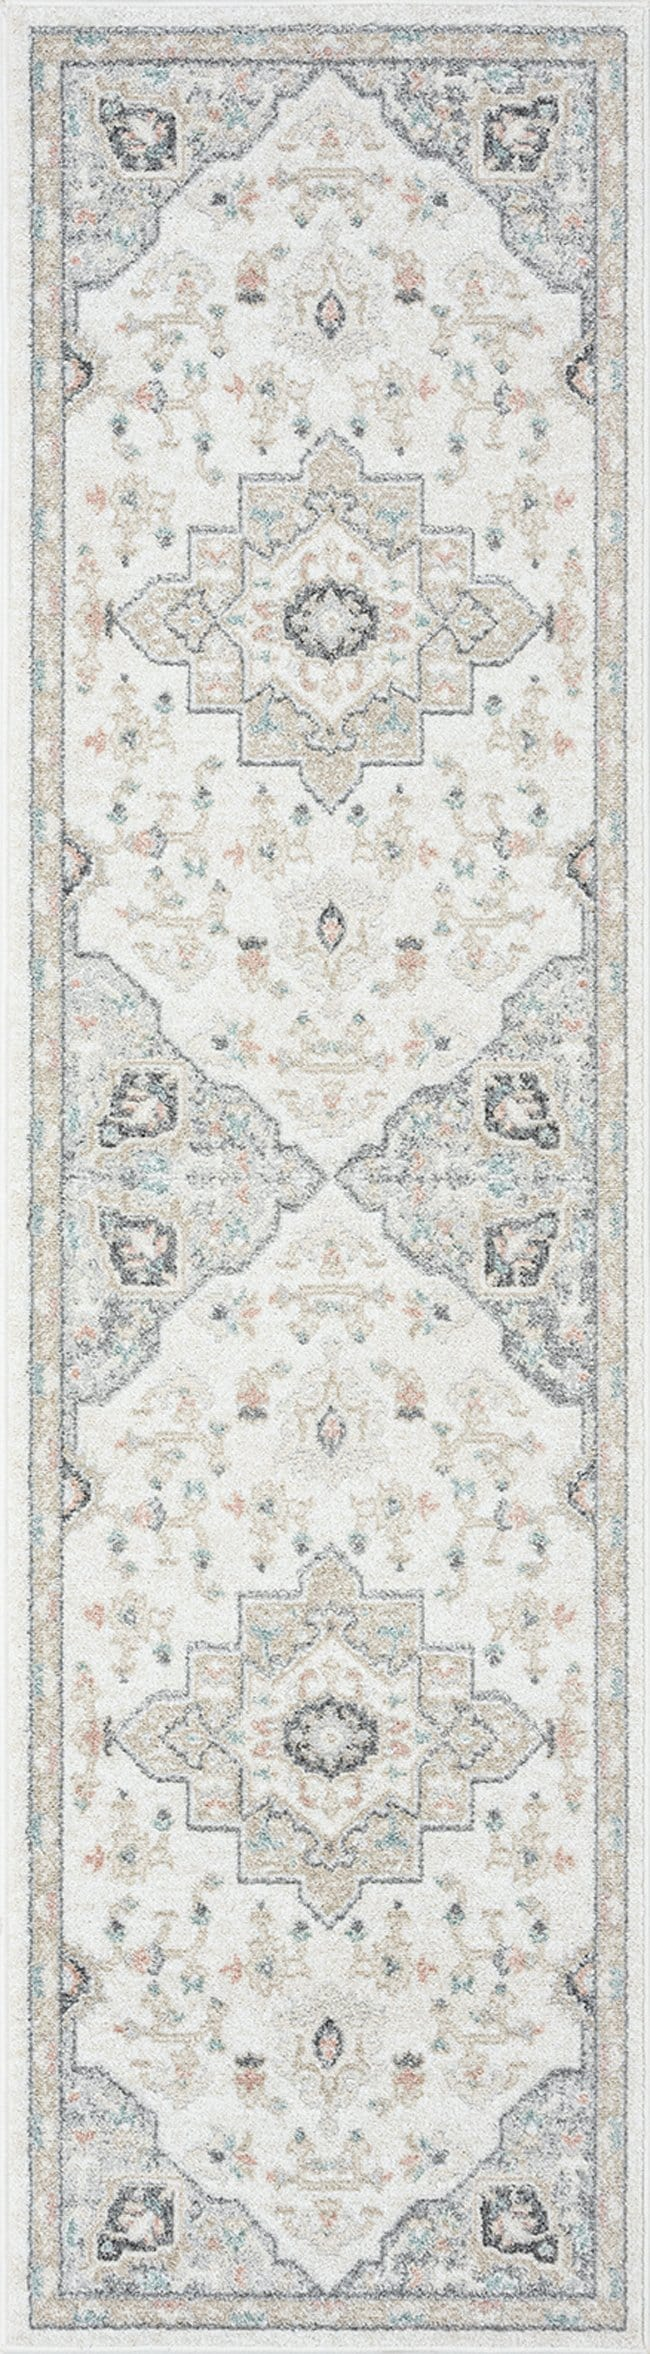 Ingrid Cream Blue and Pink Traditional Floral Runner Rug